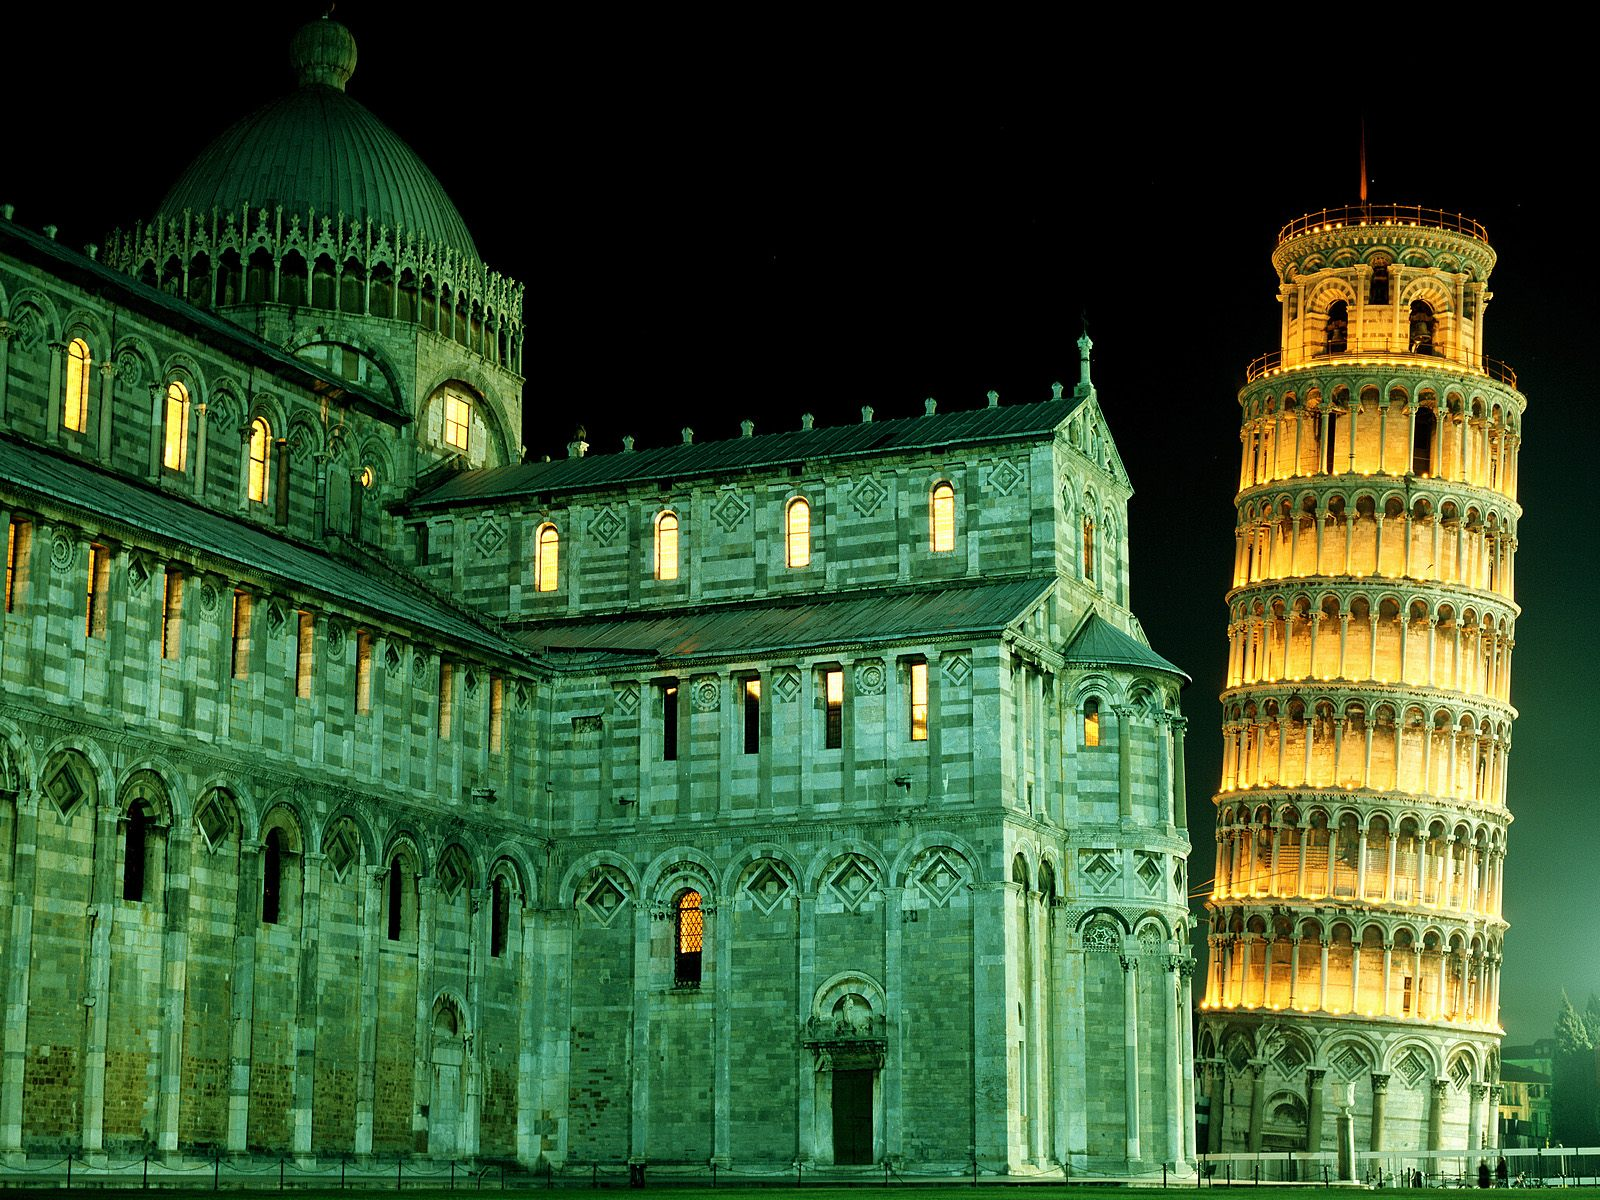 Duomo Leaning Tower Pisa Italy wallpaper